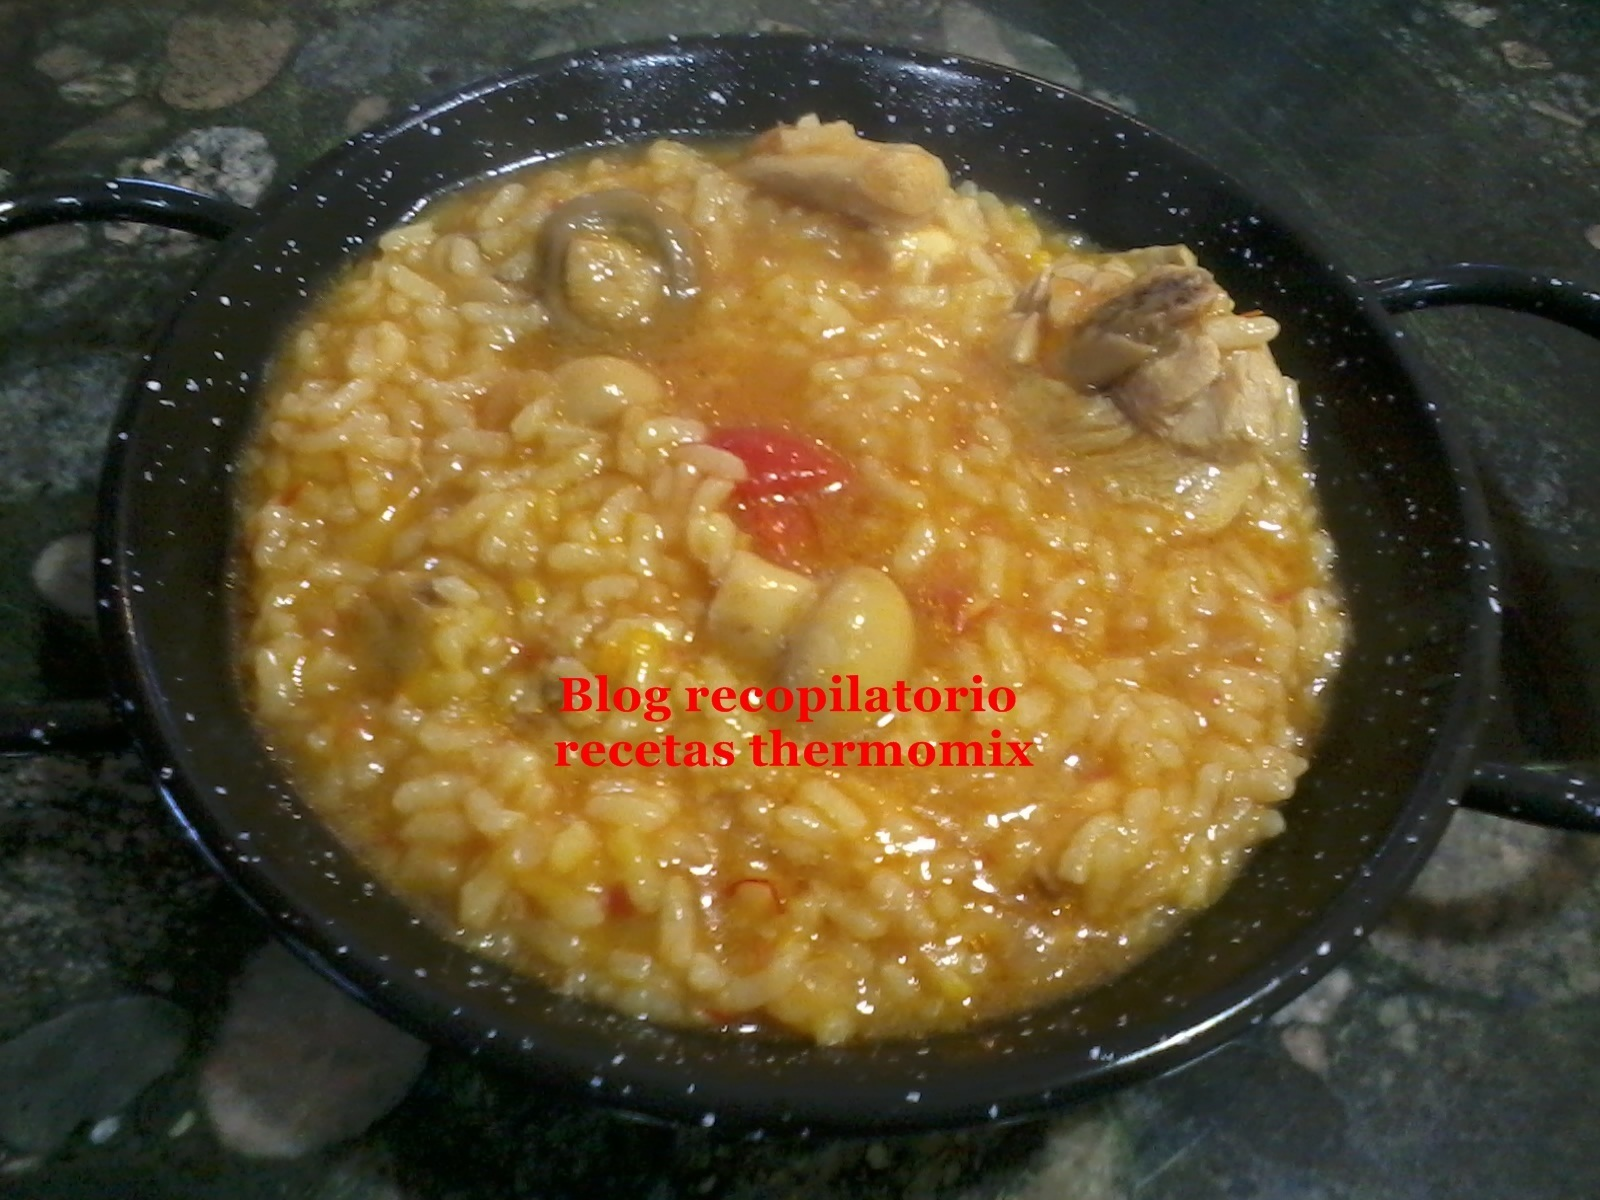 Arroz caldoso de pollo thermomix